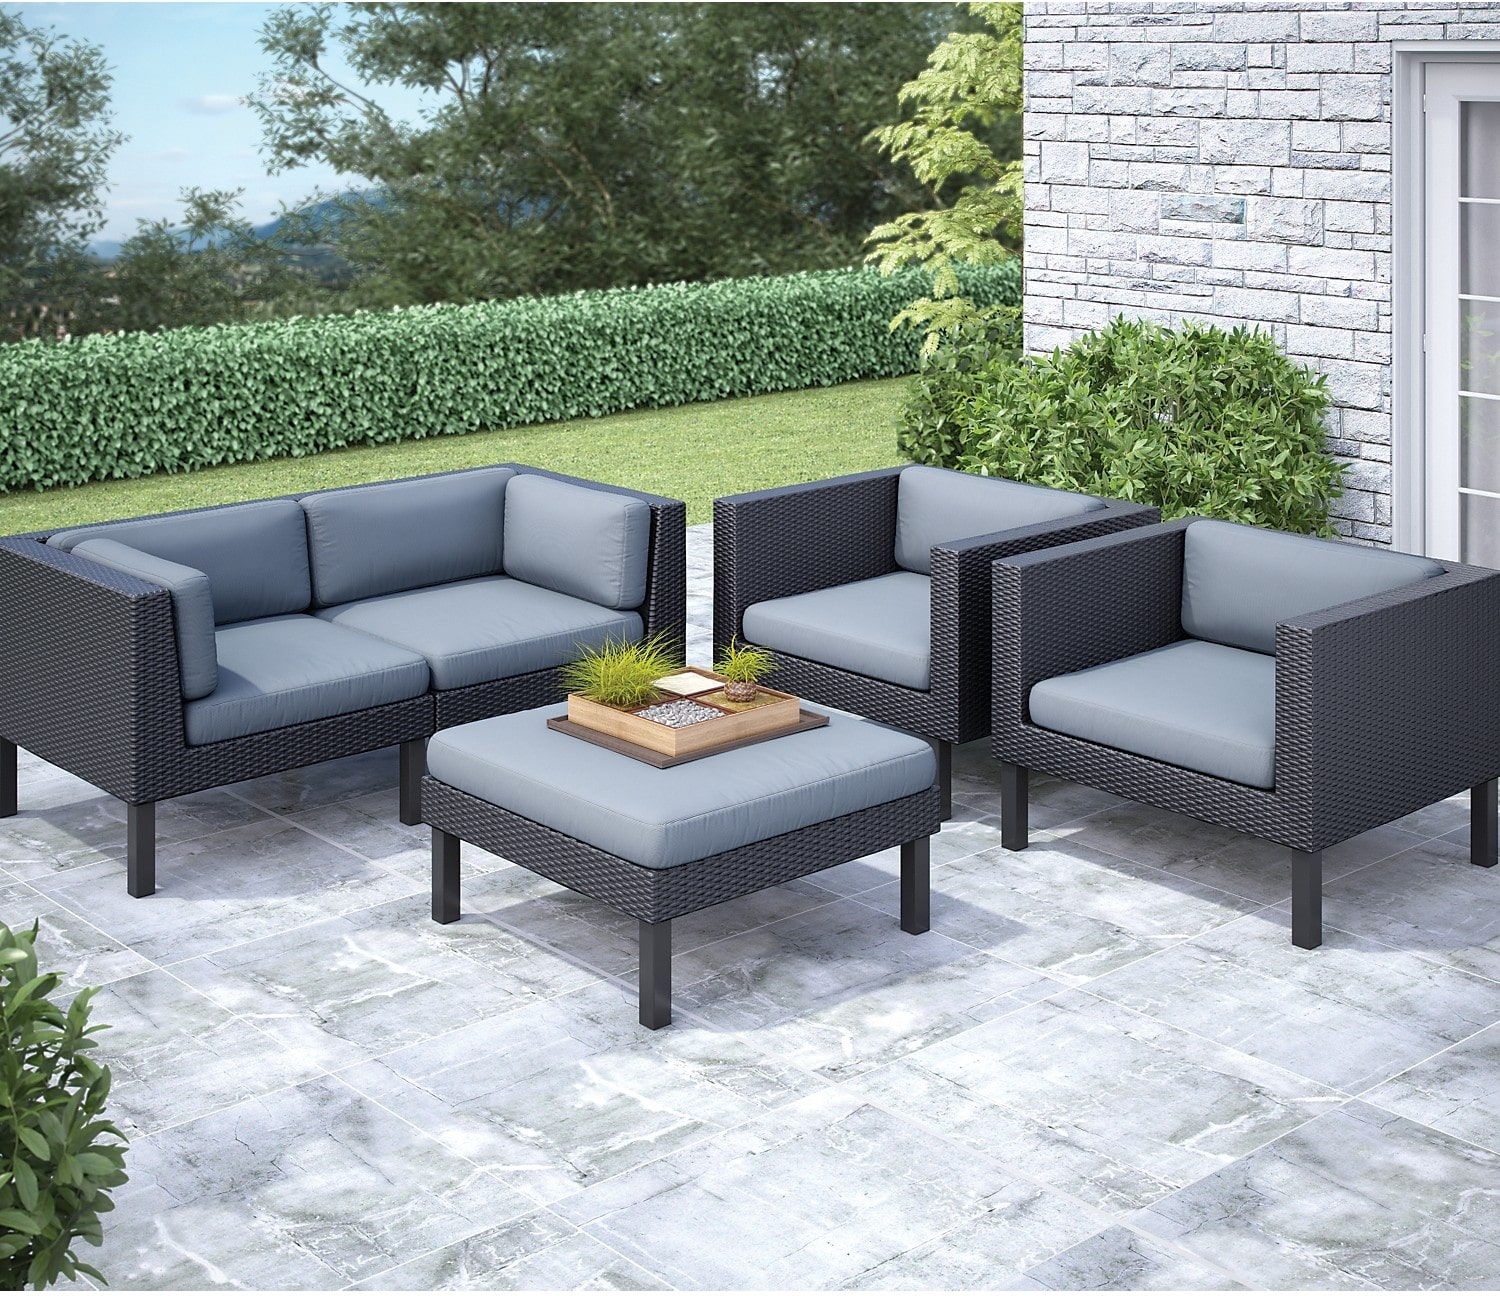 oakland piece patio conversation set – black  the brick -  patio conversation set – black hover to zoom